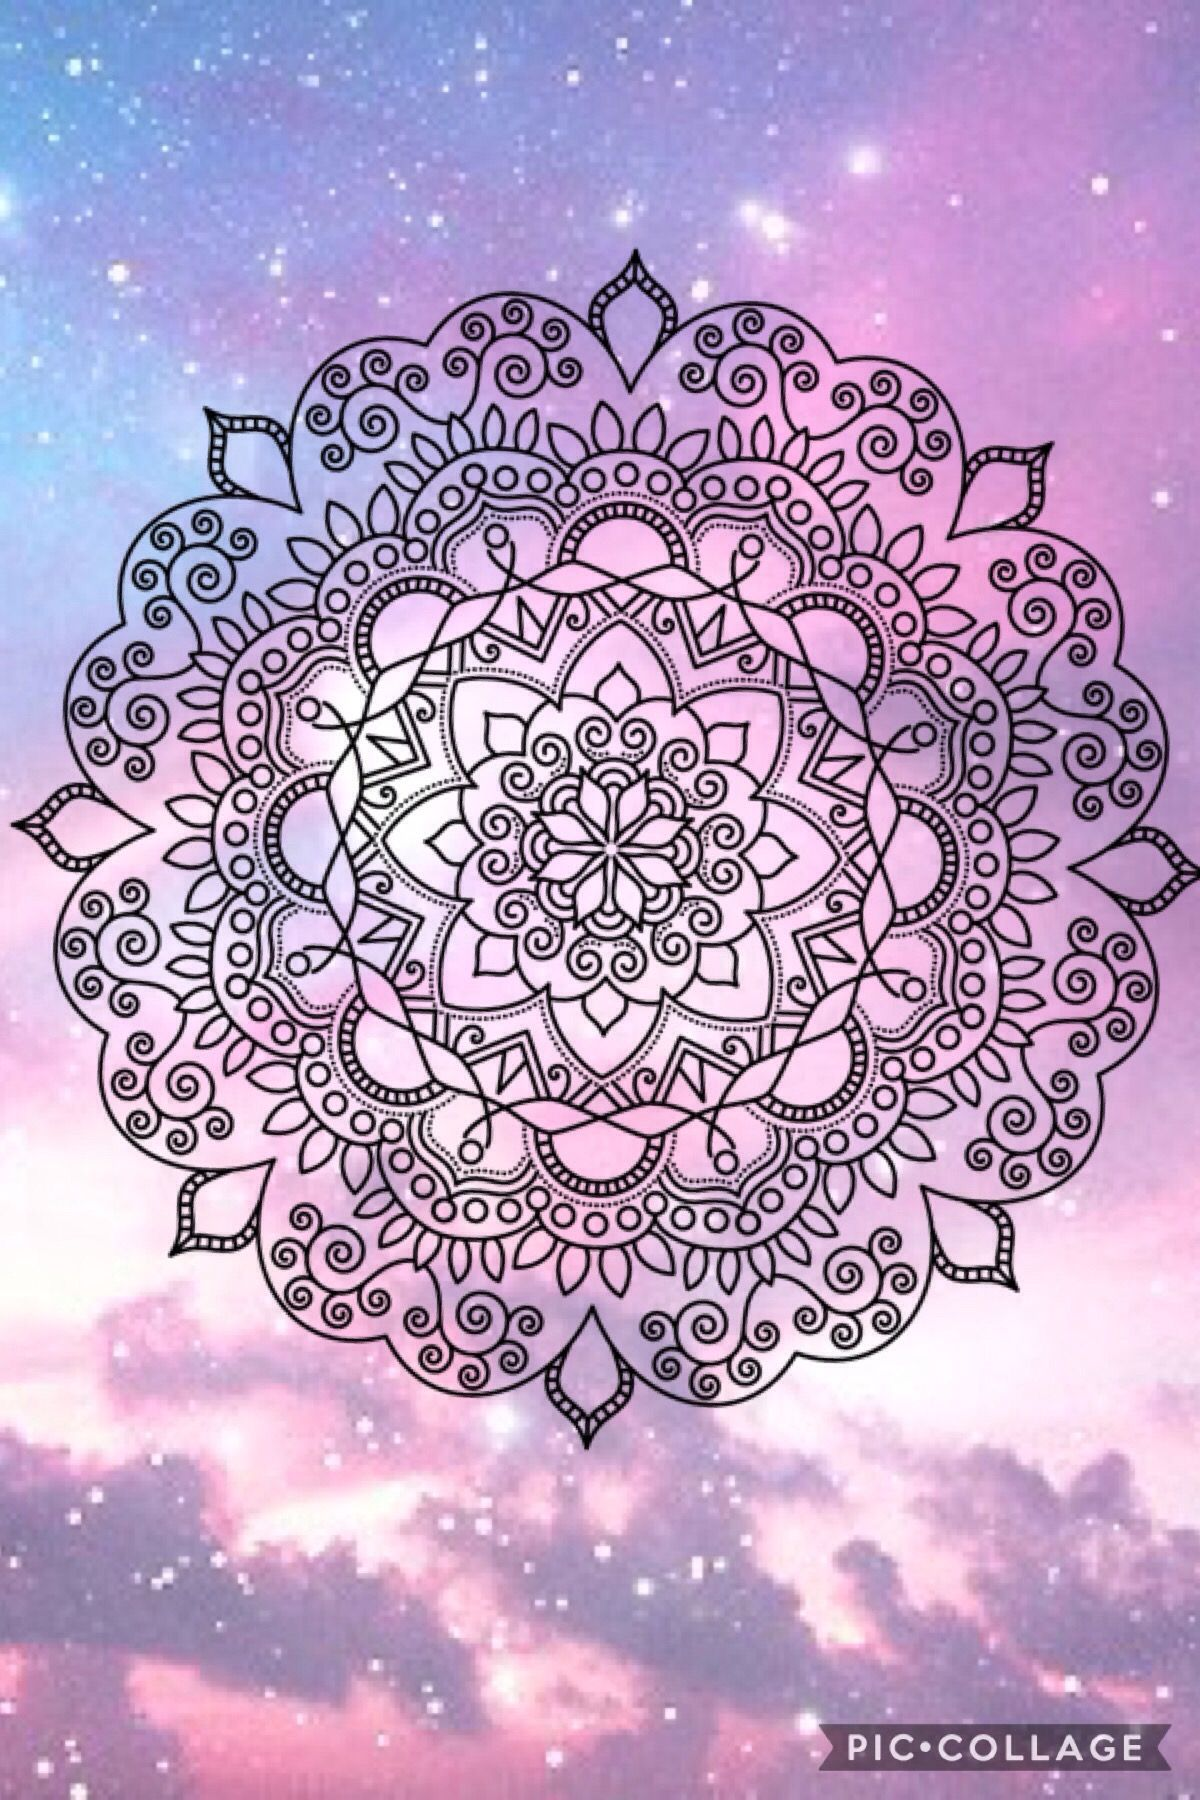 Wallpaper iphone mandala - Mandalas Iphone Wallpapersawesome